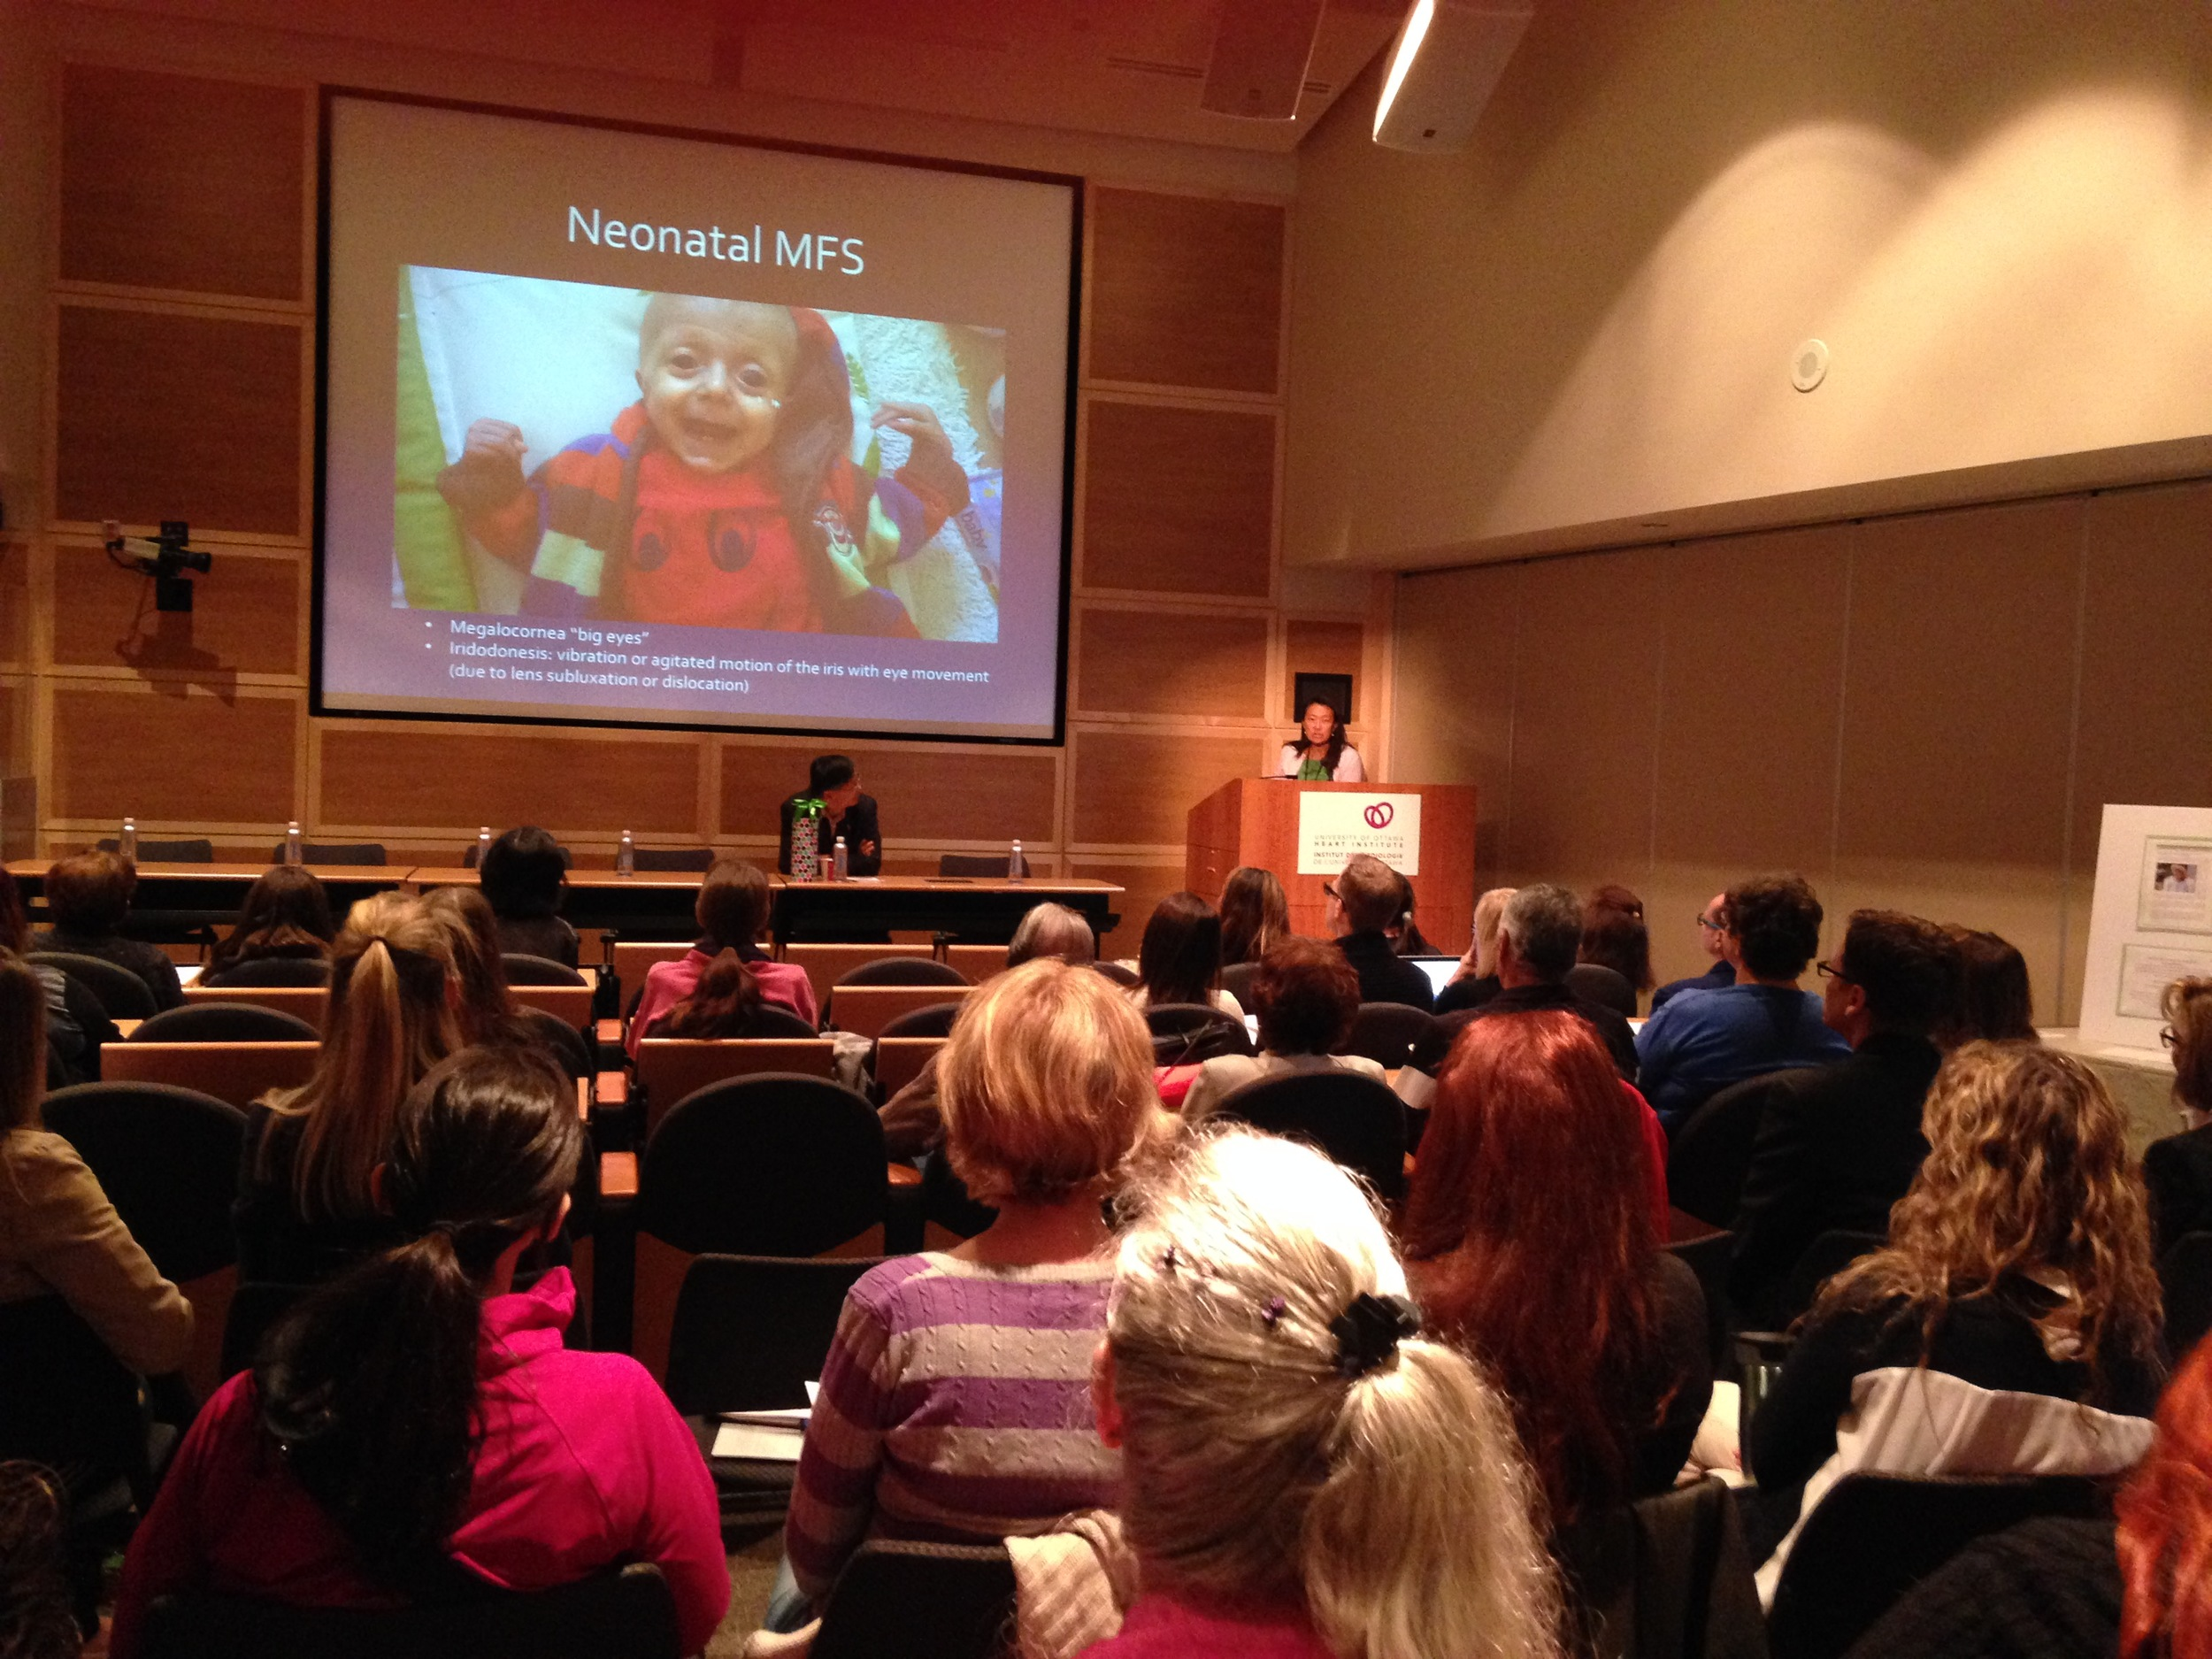 Dr Lillian Lai, CHEO - Pediatric Diagnosis and Mangement of MFS and LDS